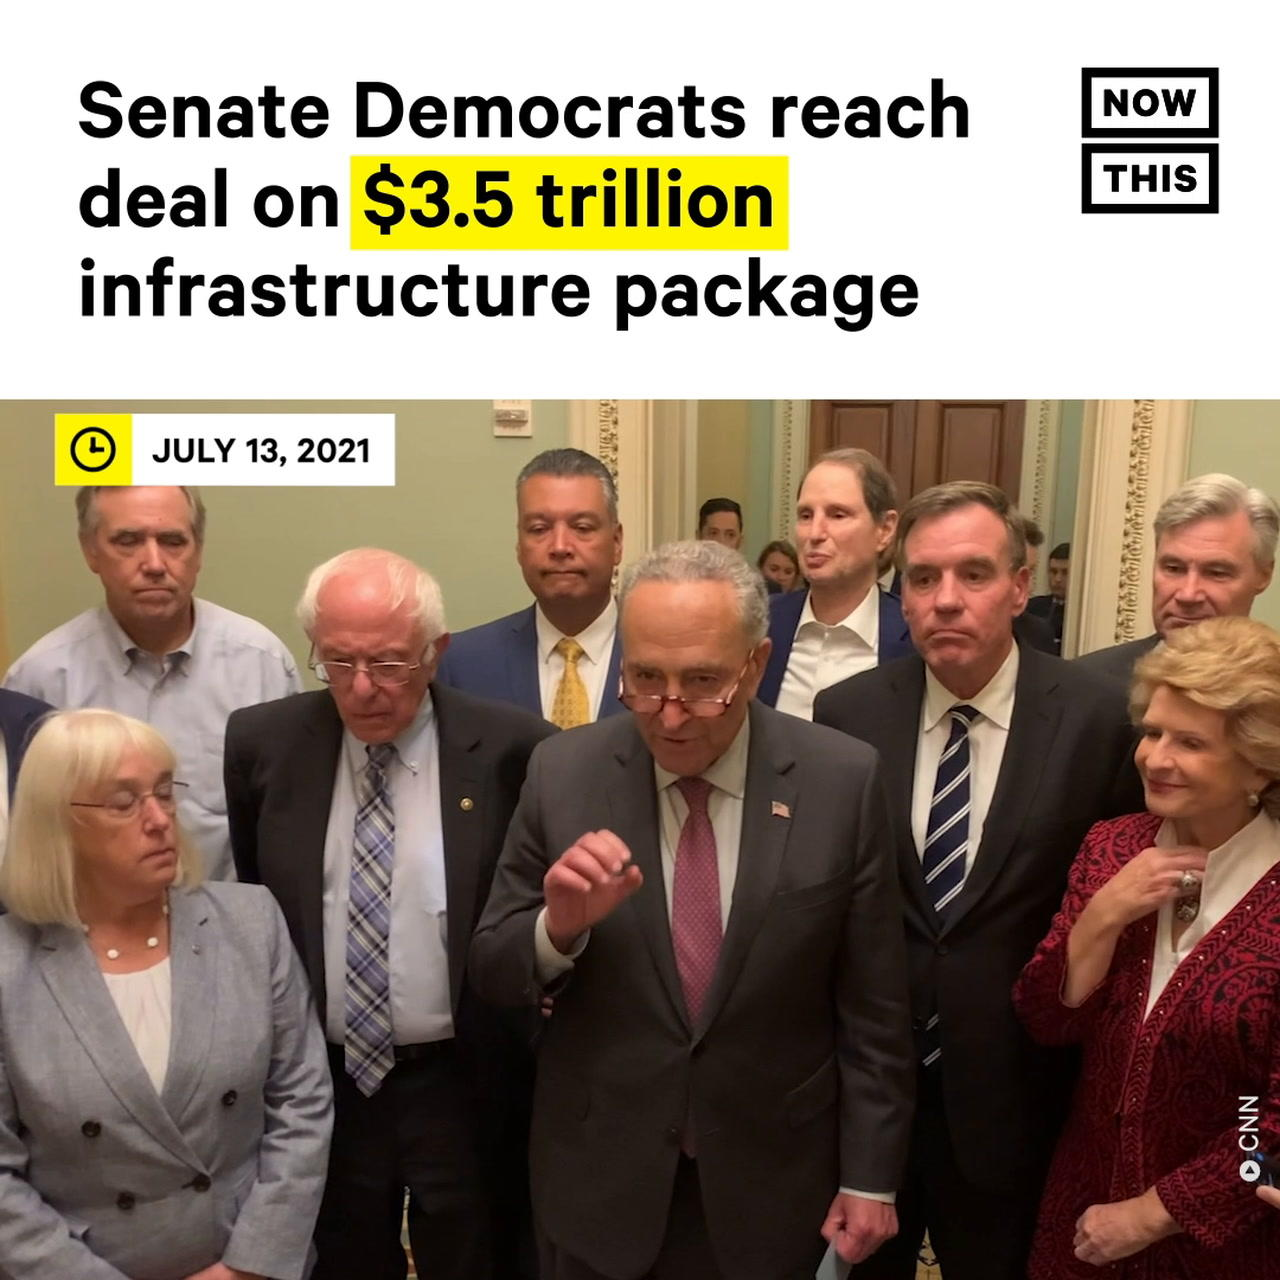 Senate Dems Reach Deal on $3.5T Infrastructure Package